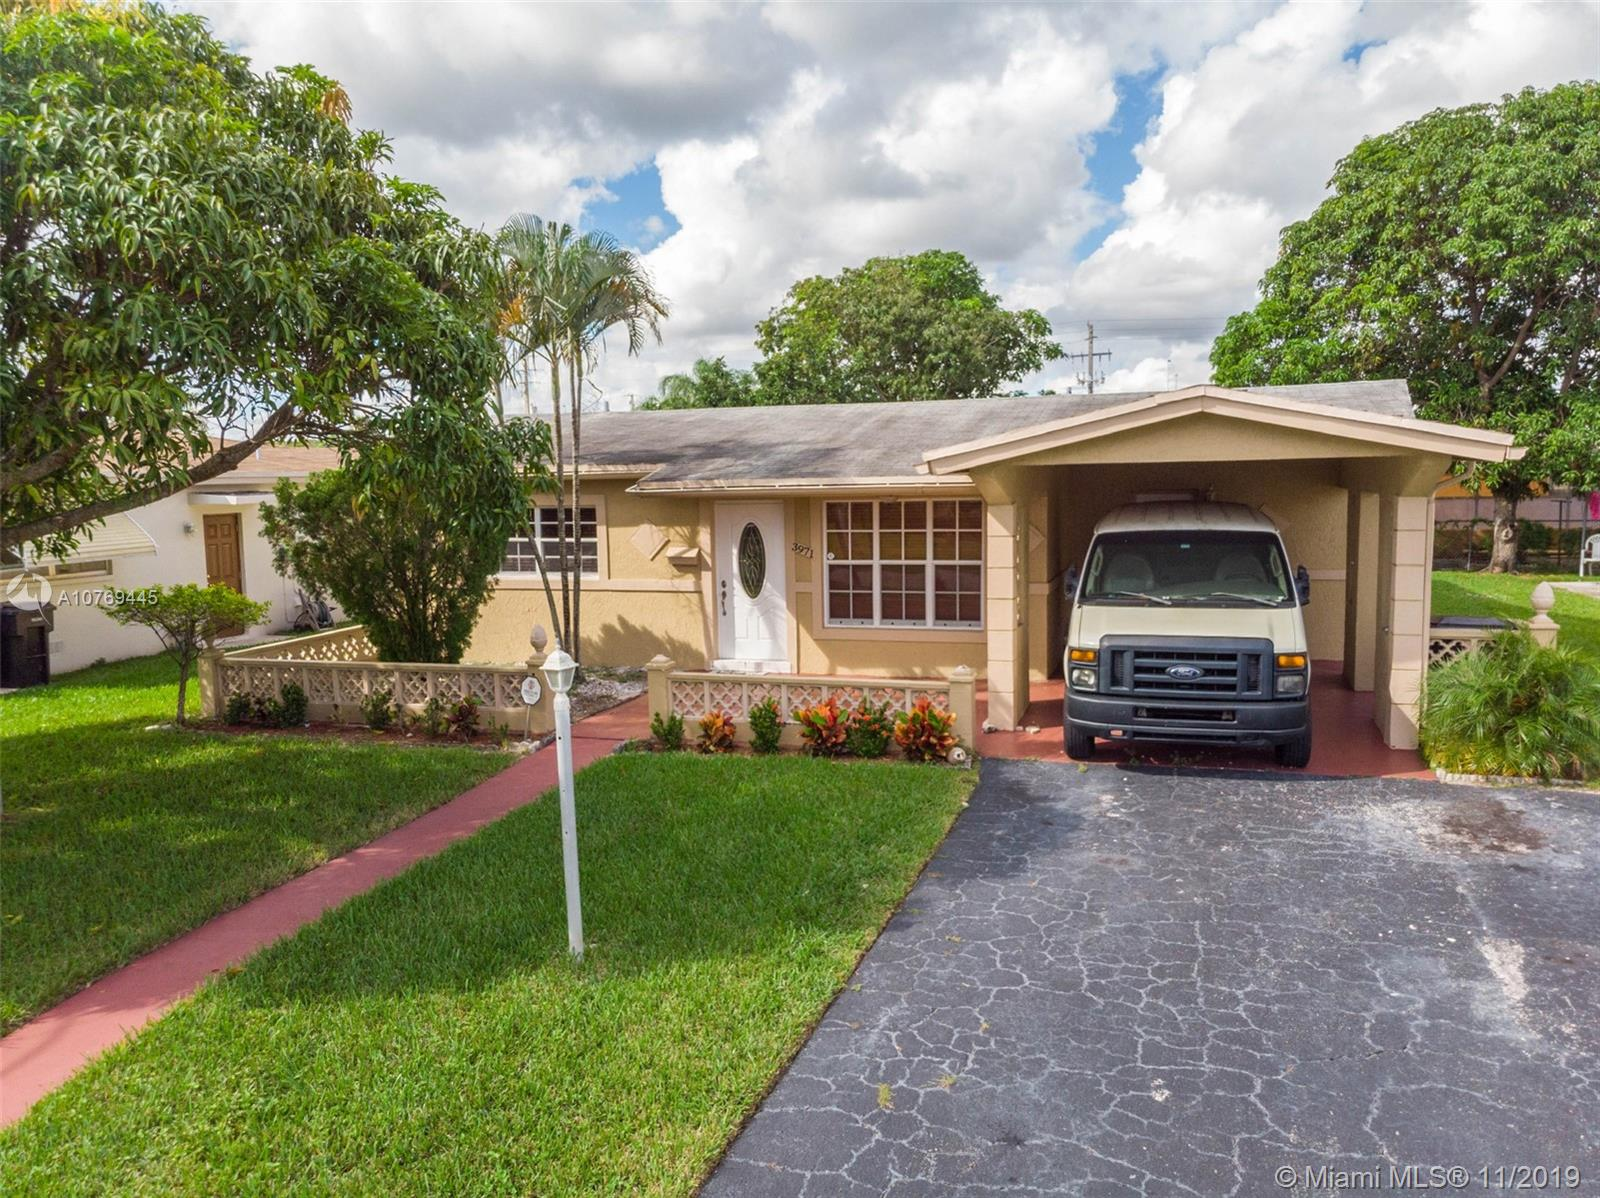 JUST REDUCED! AMAZING UPDATED 3/2 HOME IN EXCELLENT CONDITION WITH FAMILY ROOM. LARGE MASTER BEDROOM, BIG WALK IN CLOSET, KNOCKDOWN WALLS AND CEILINGS, CROWN MOLDING,  KITCHEN HAS WOOD CABINETS AND STAINLESS STEEL APPLIANCES. CENTRAL AIR, TILE FLOORS THROUGHOUT EASY TO SHOW. PRIME LAUDERDALE LAKES LOCATION PERFECT FOR LARGE FAMILY